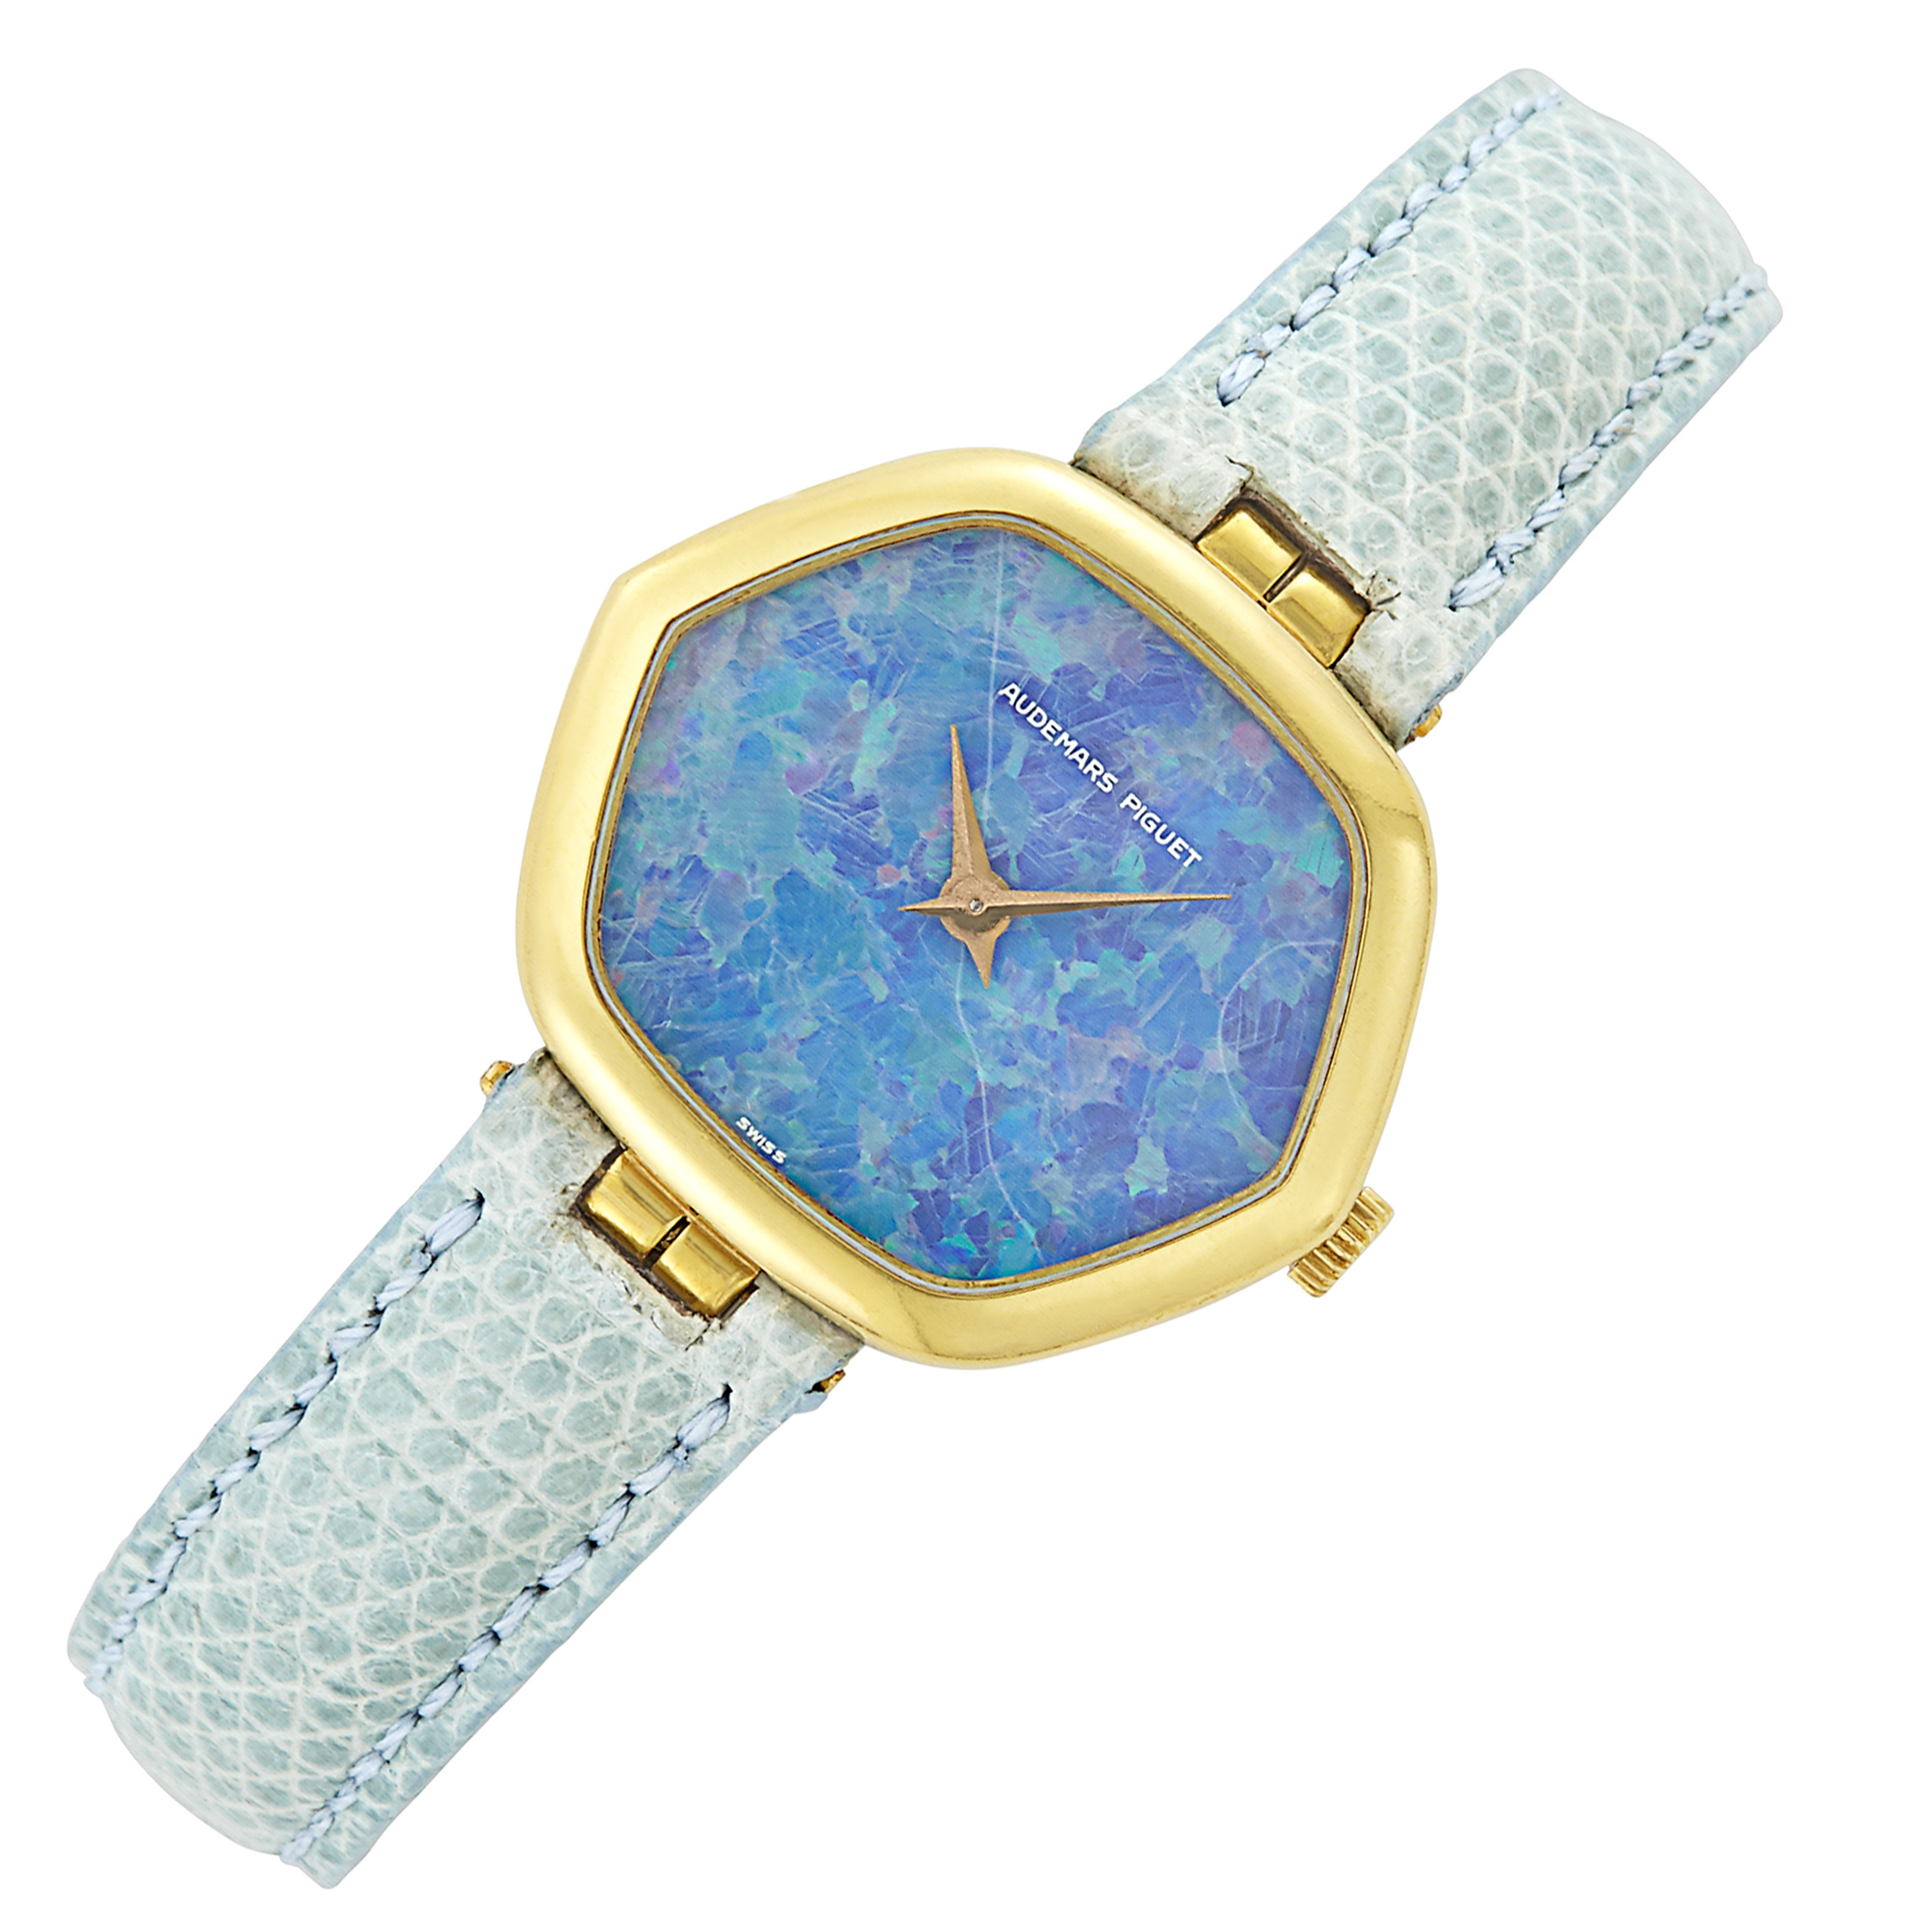 Lot image - Gold and Opal Wristwatch, Audemars Piguet